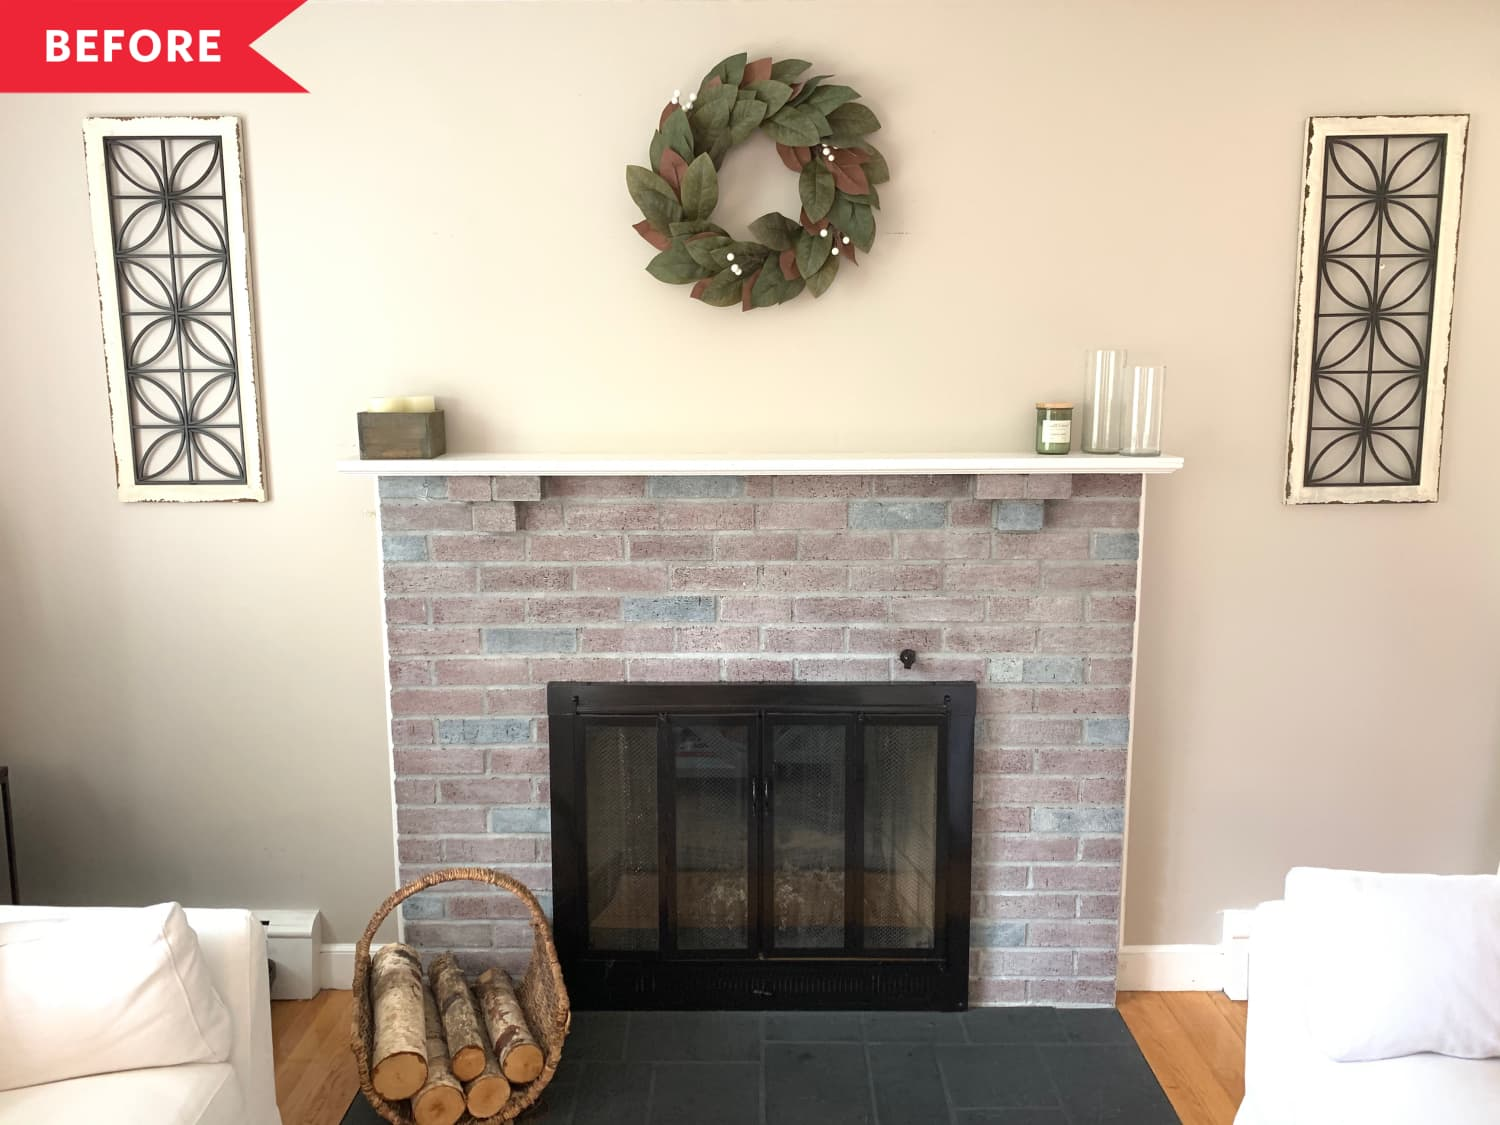 Before and After: A Nearly-New Fireplace for $100 (and a Day's Work)